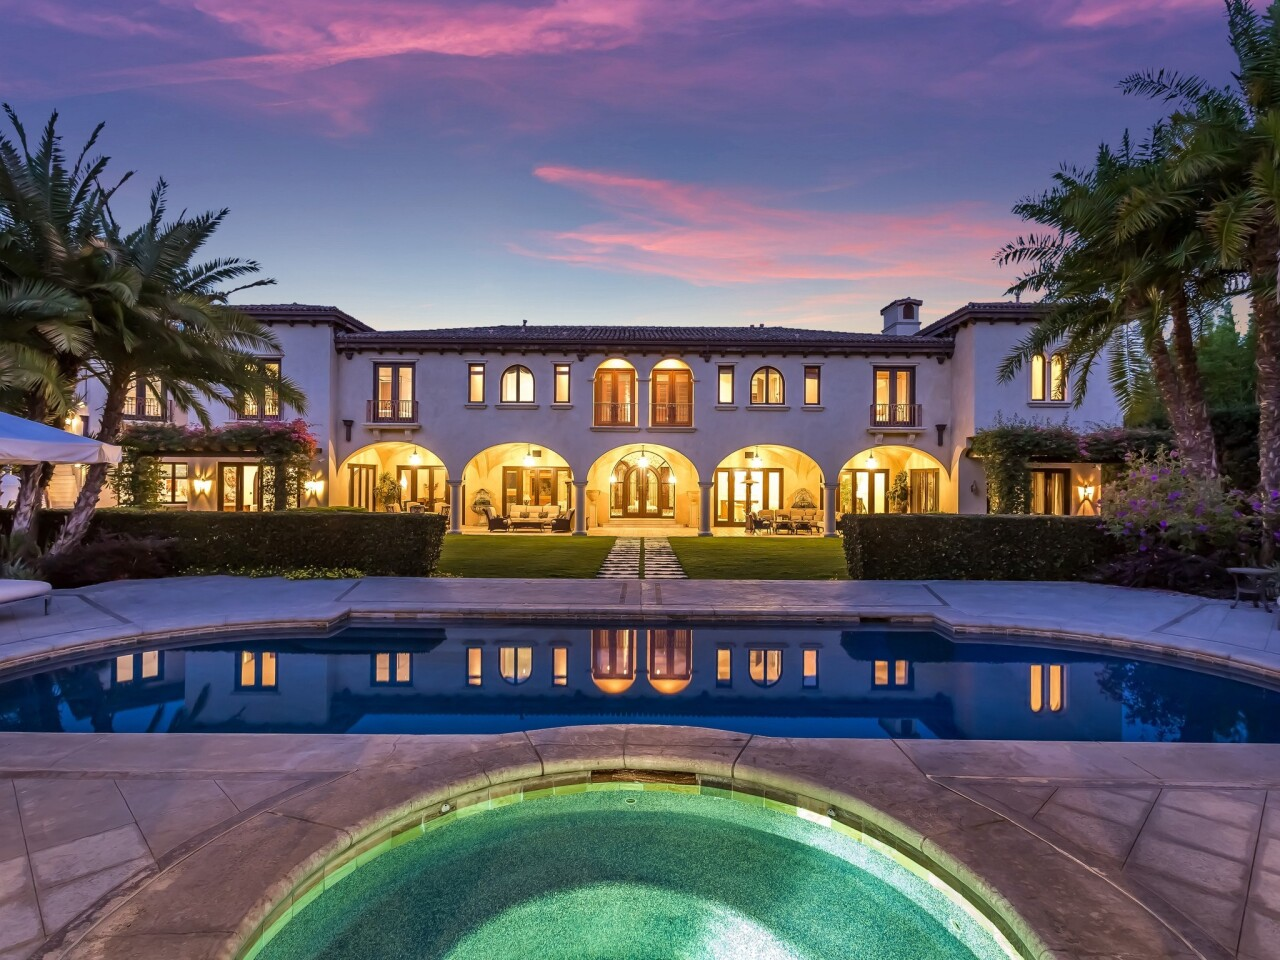 Barry Bonds' former home | Hot Property